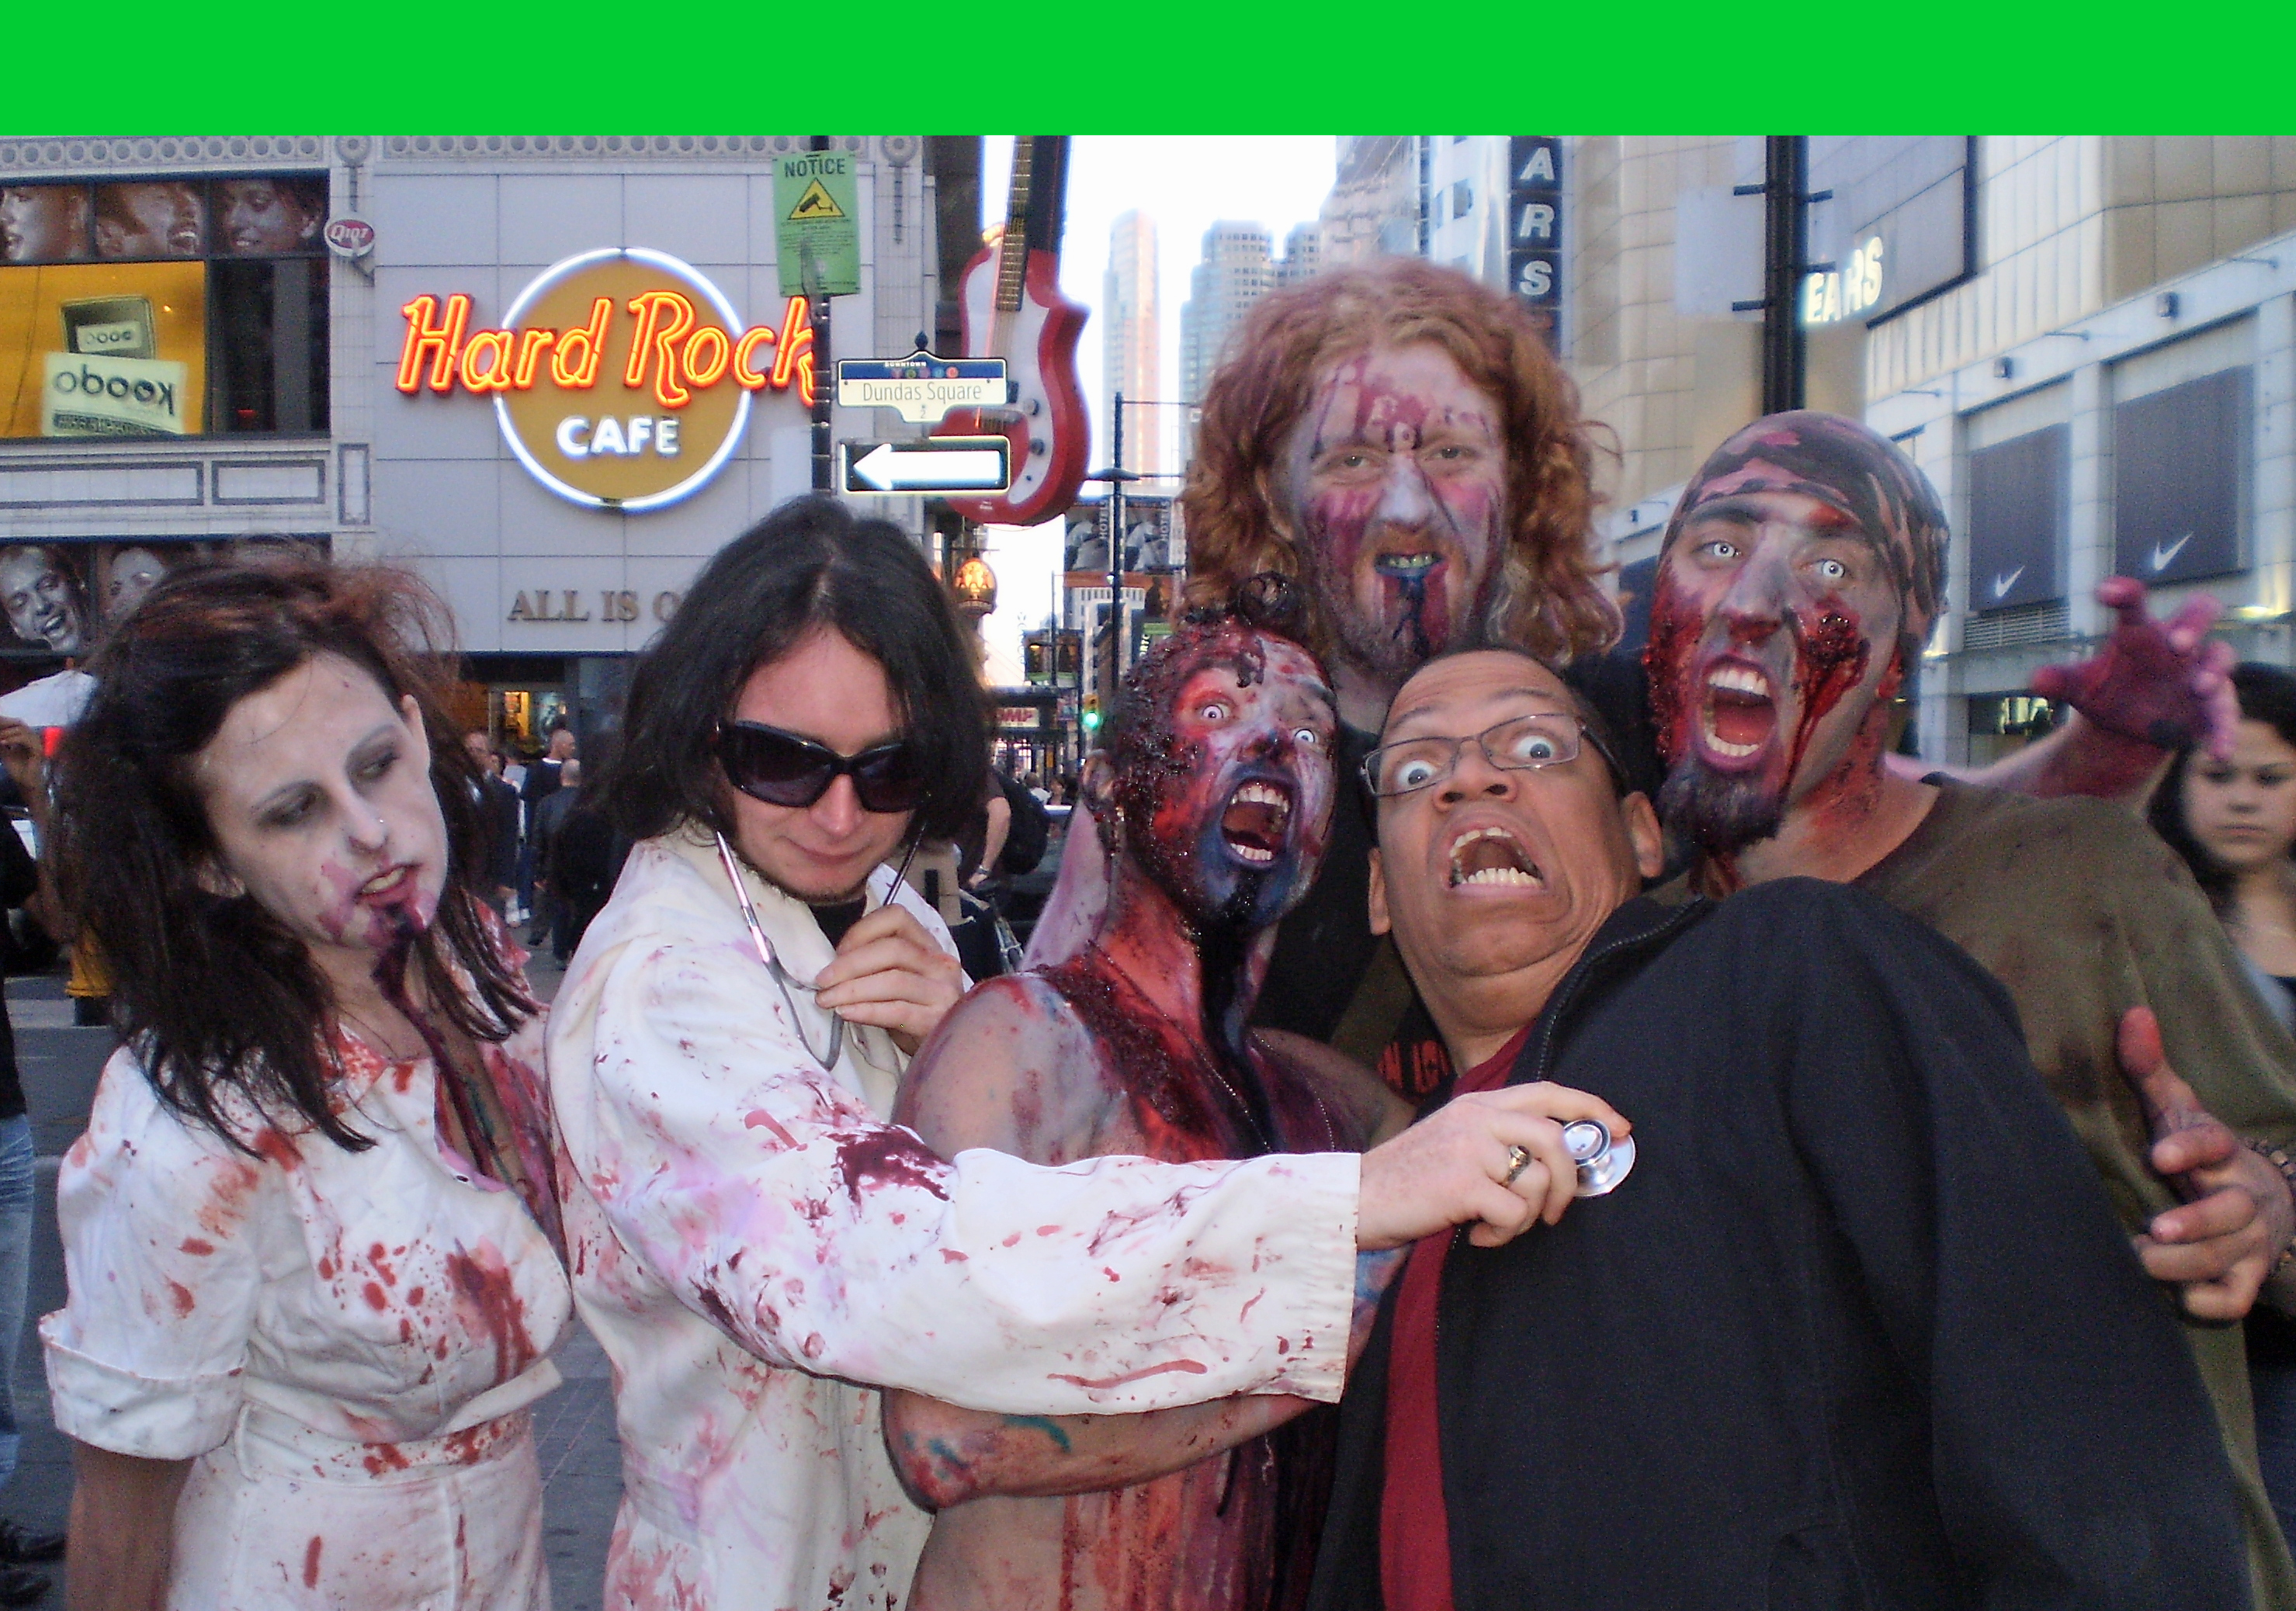 Greg Morton attacked by Zombies in Dundas Square in Toronto